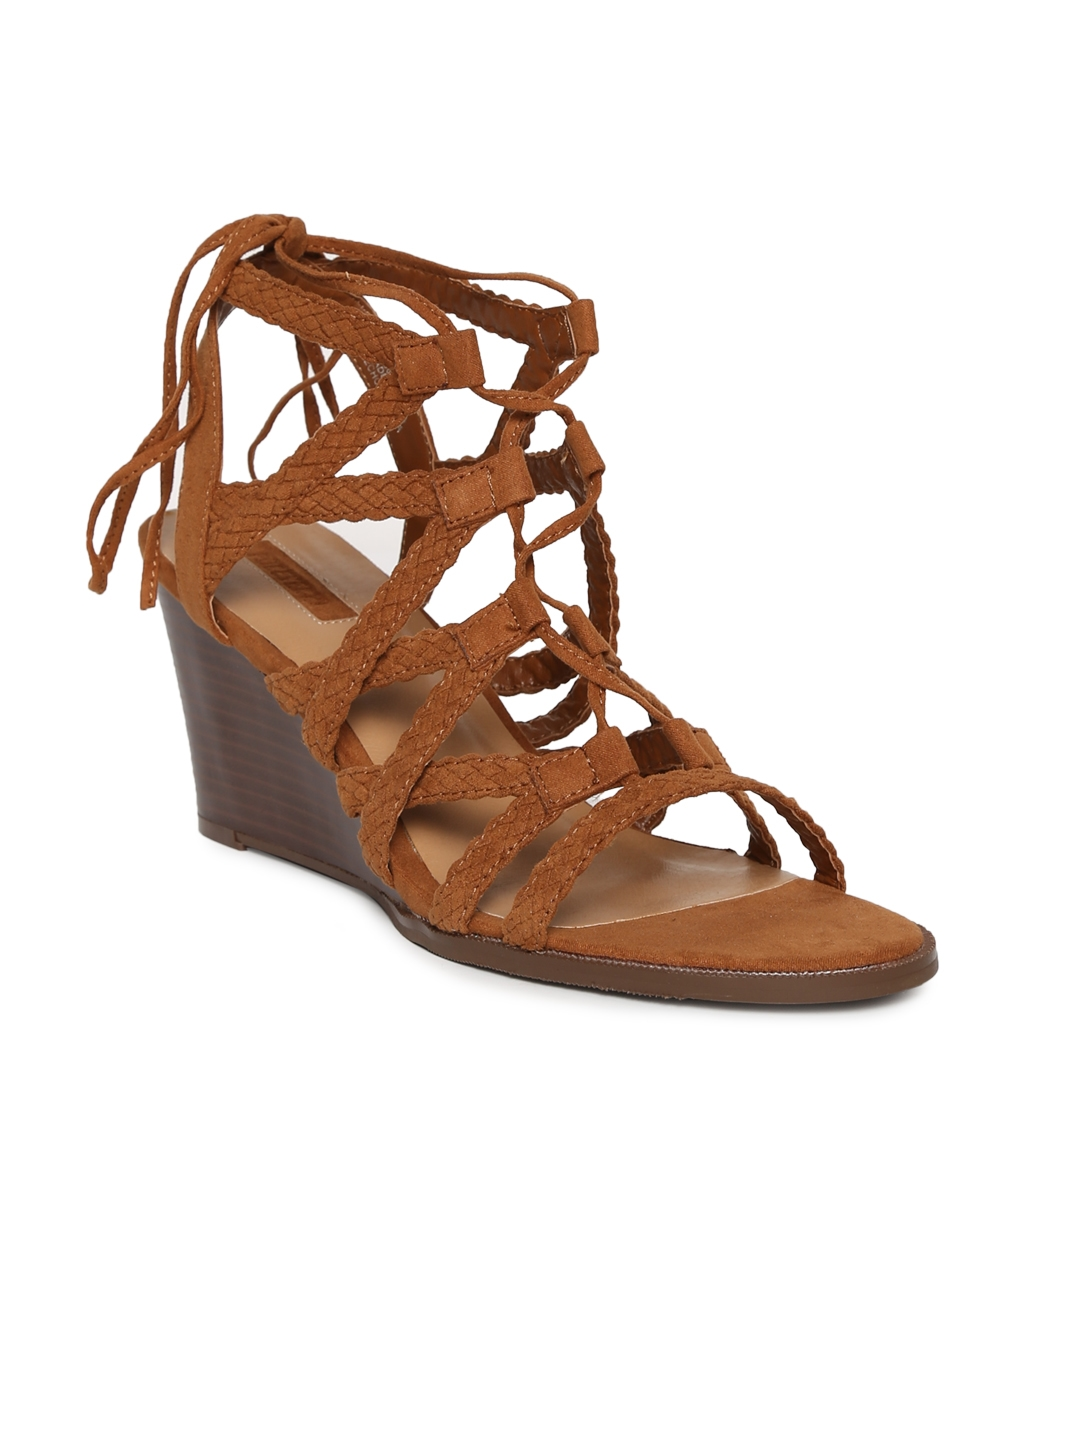 3ab80a1dbf3a Buy FOREVER 21 Women Tan Brown Solid Gladiators - Heels for Women ...